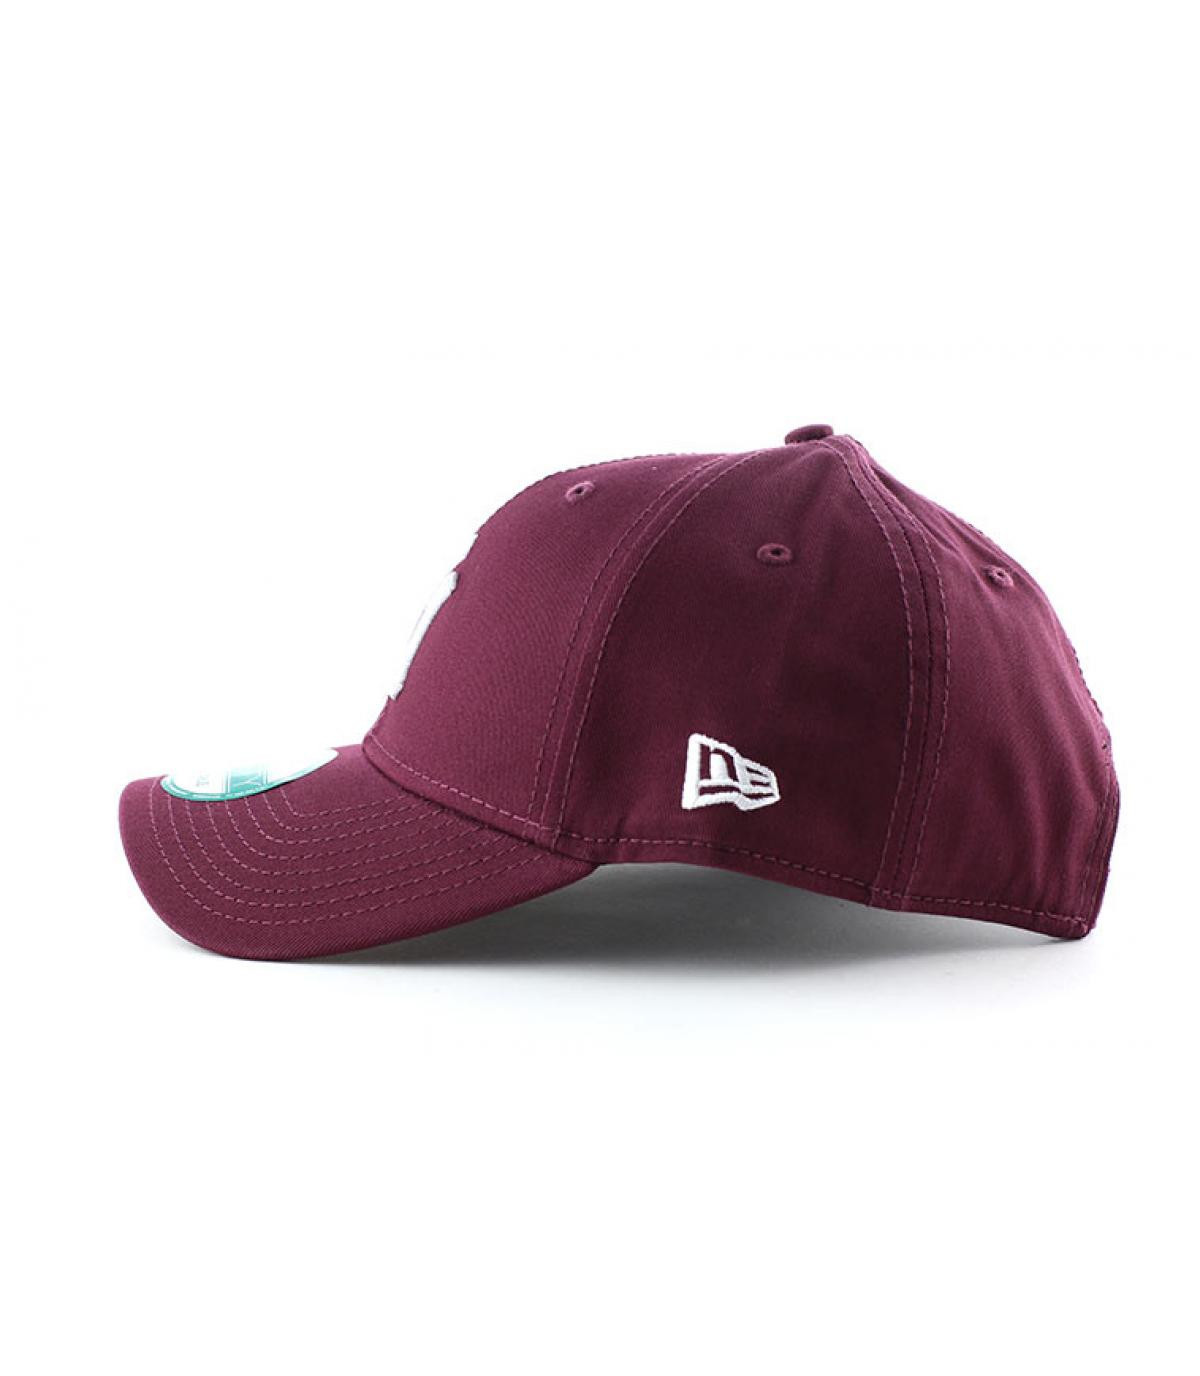 Details League essential Ny maroon - afbeeling 4